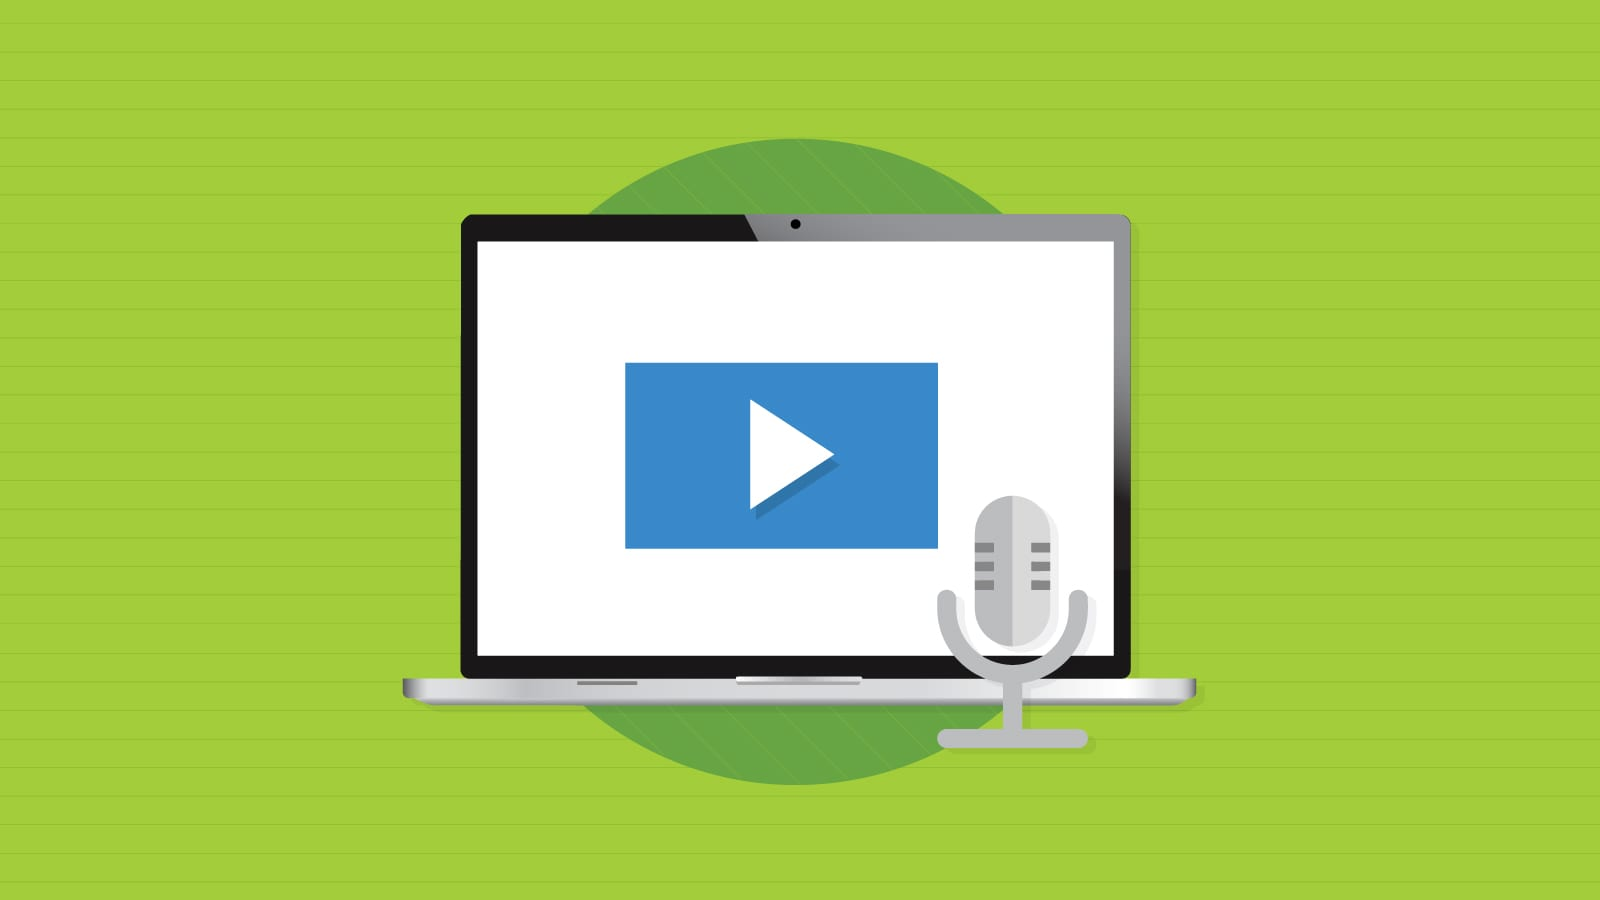 How to Embed HTML5 Video in Email - Email On Acid